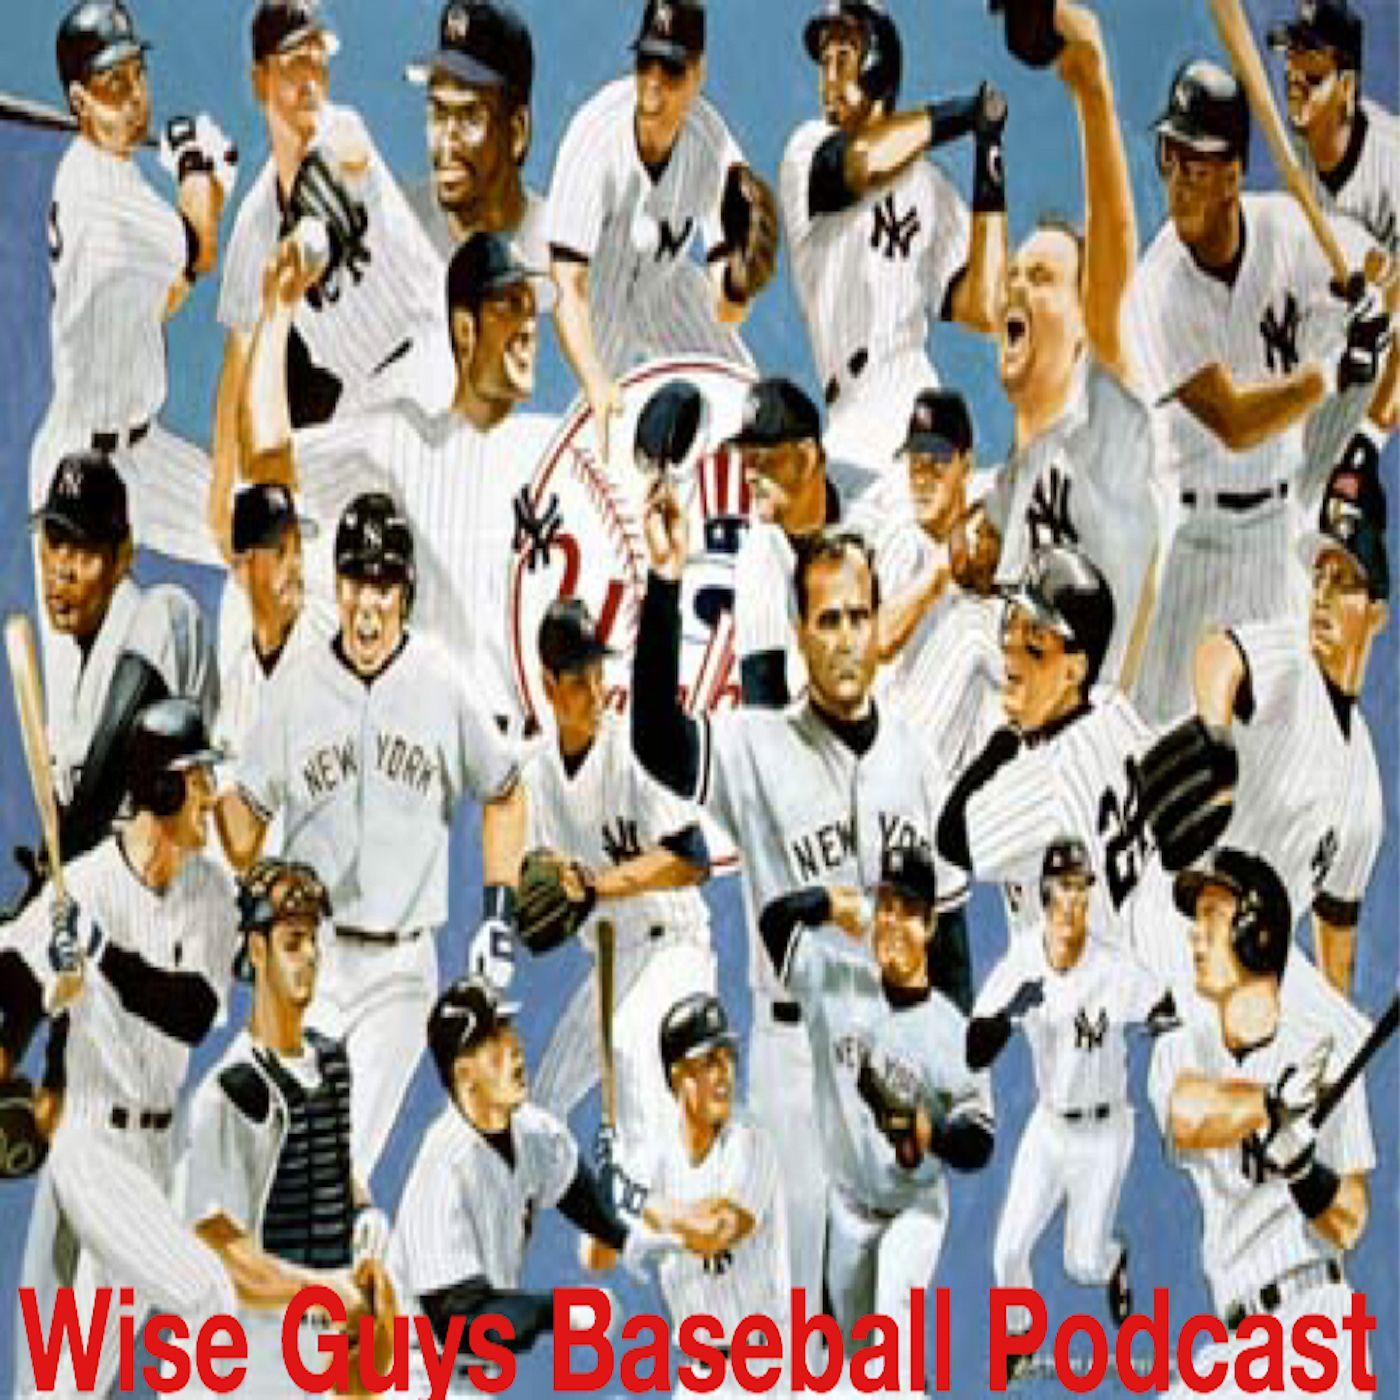 Ep. 1 Preview of 2016 Yankees (Part 1)